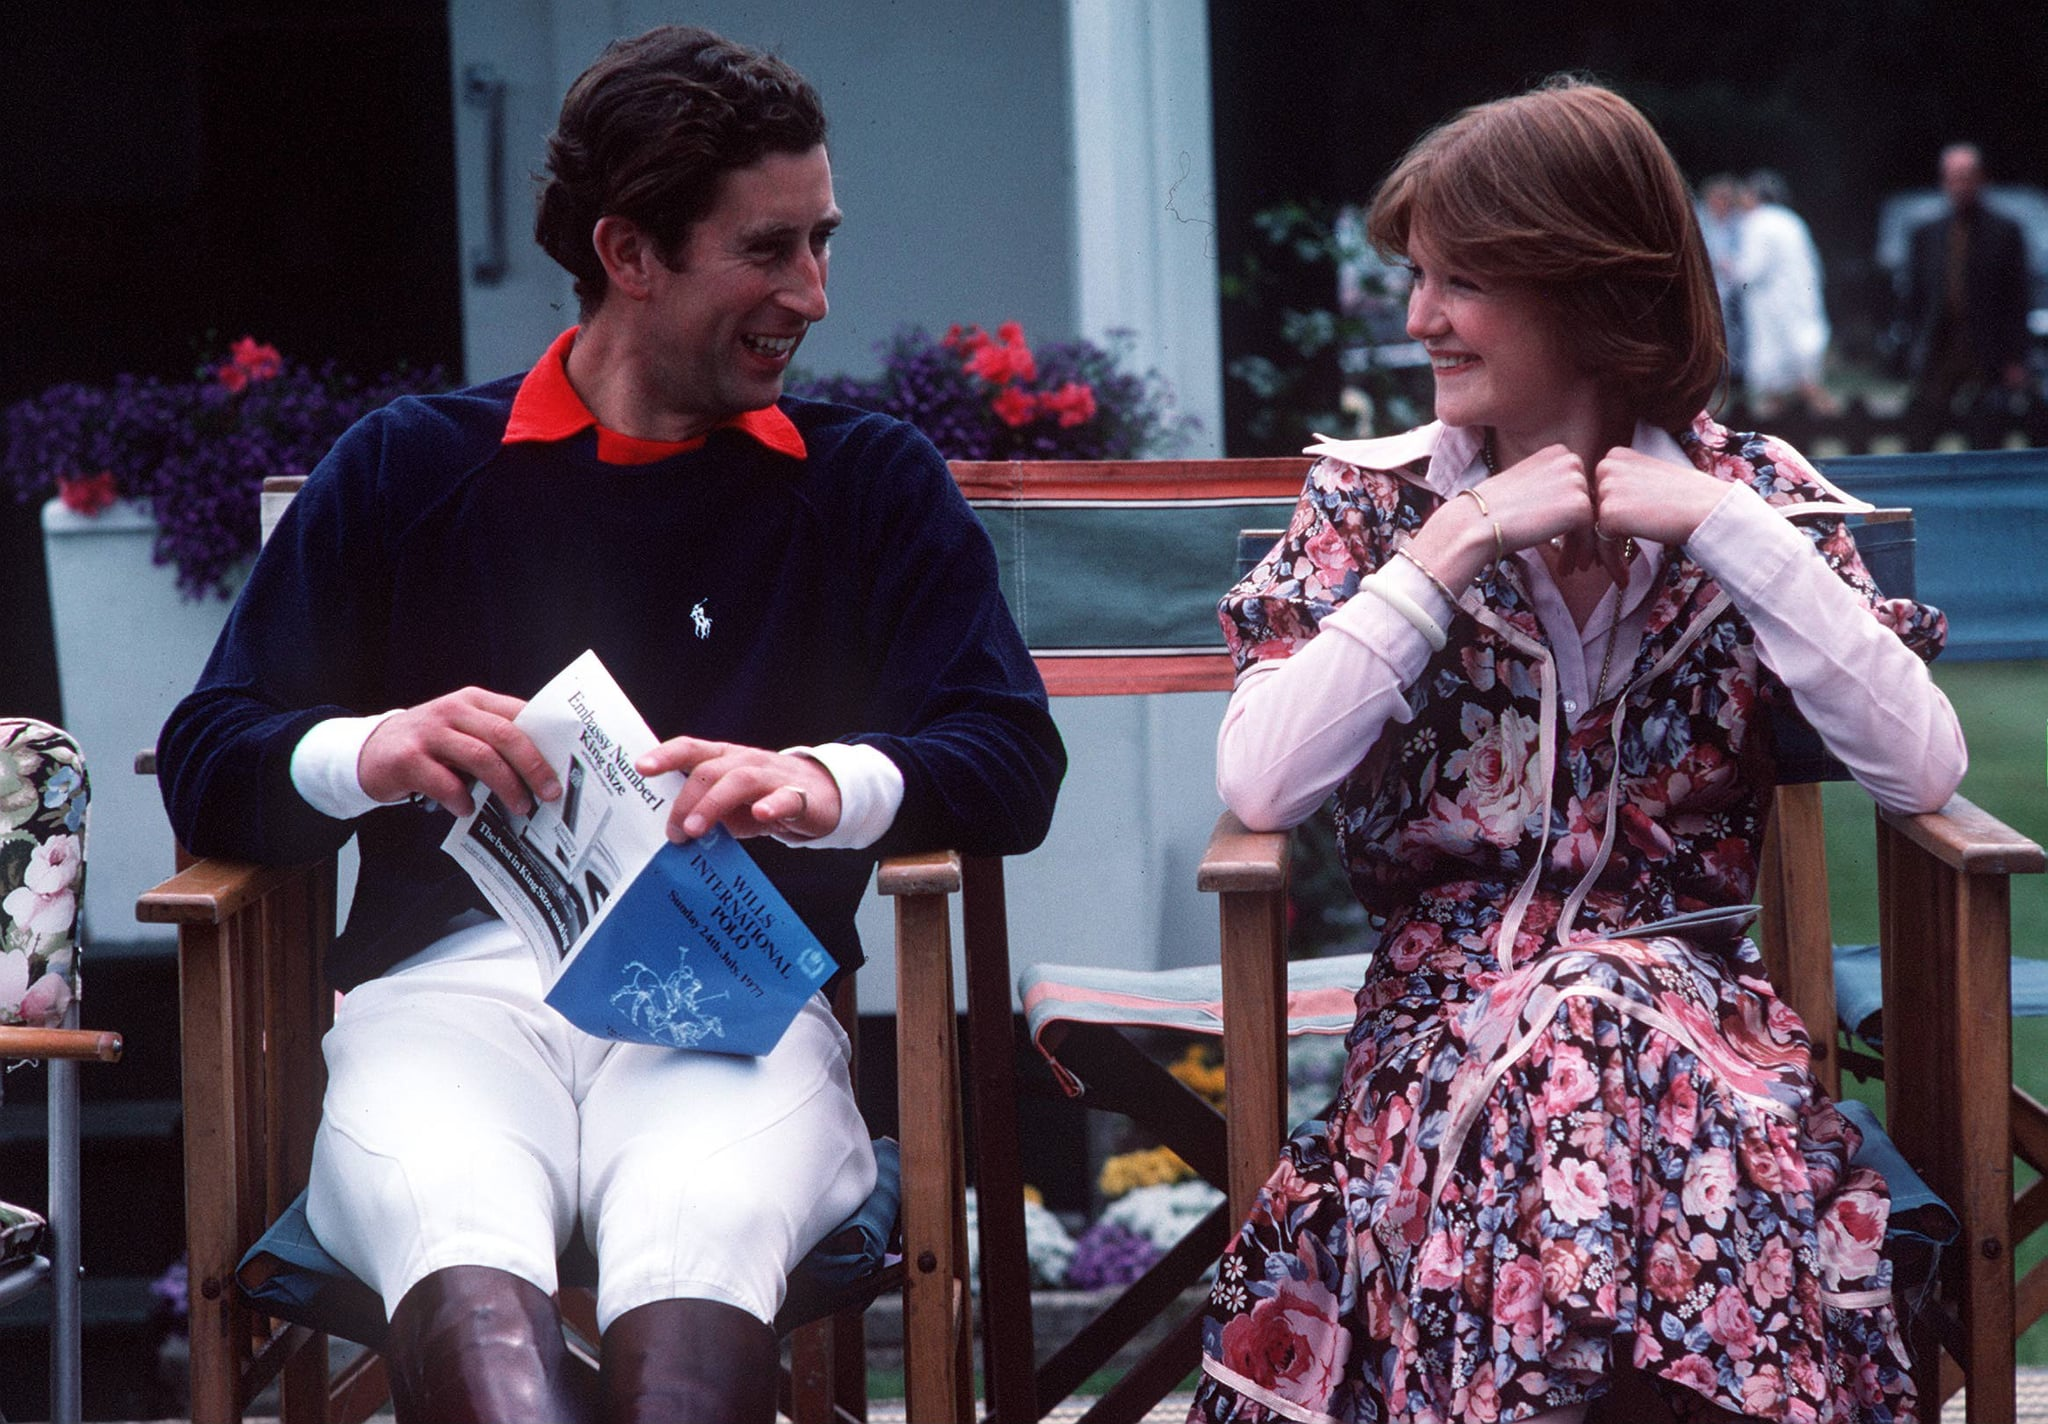 Prince Charles and Lady Sarah Spender discussing during a polo match